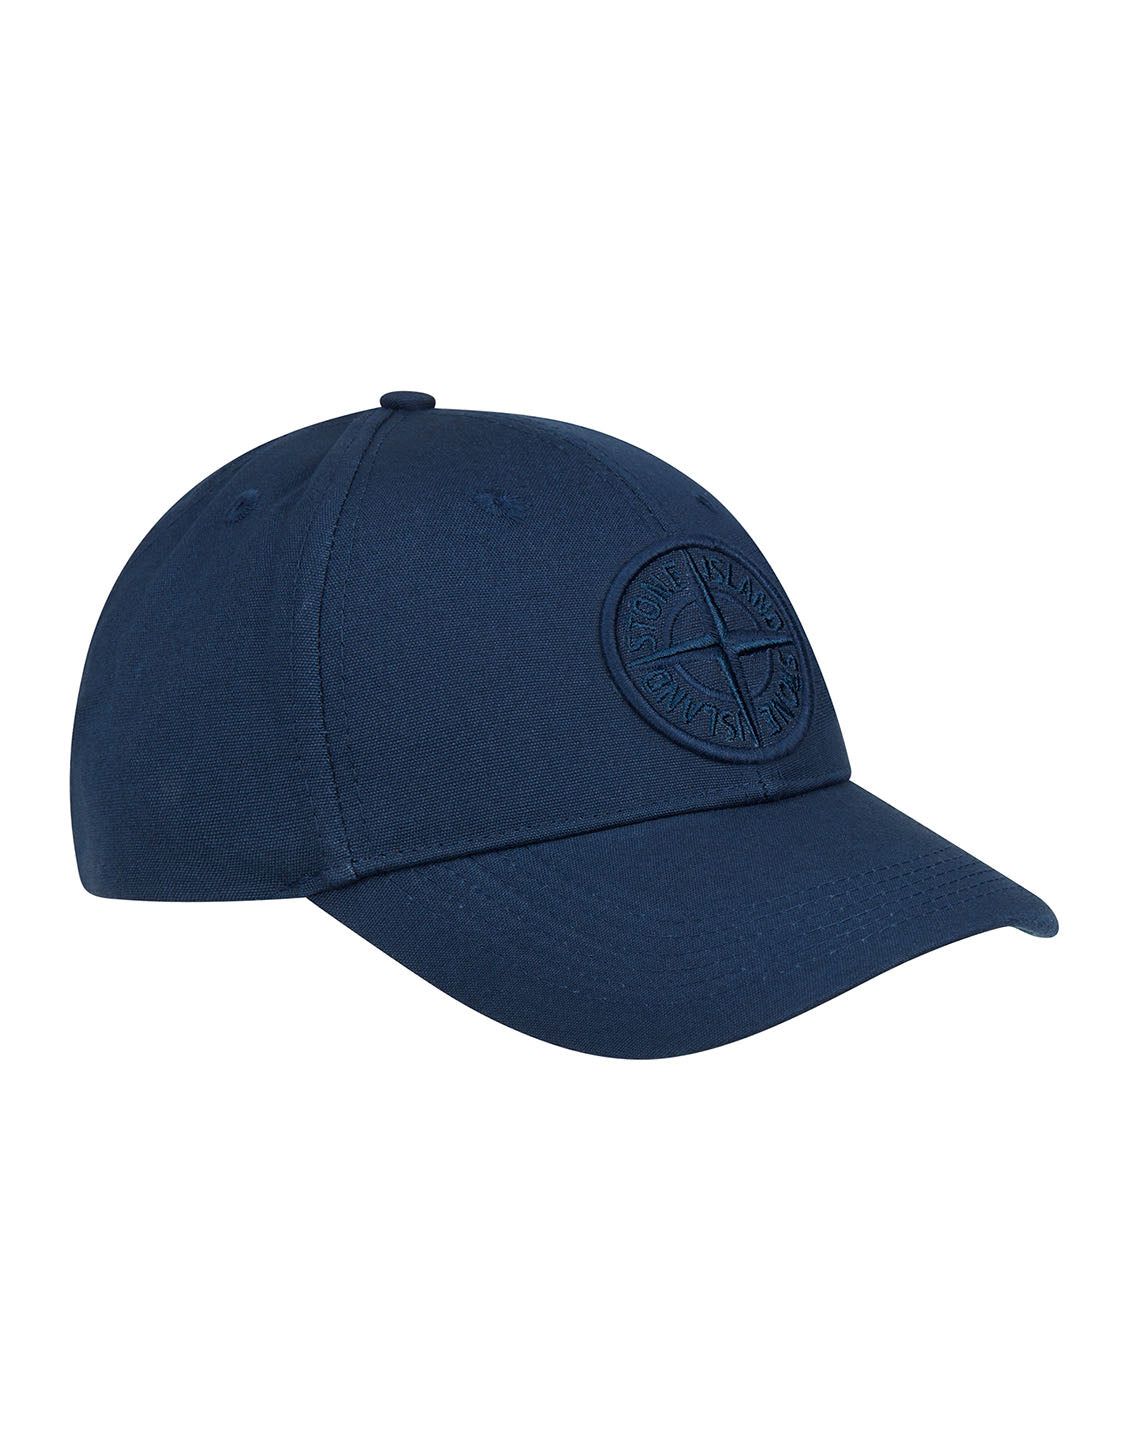 99168 Cap in Blue Marine